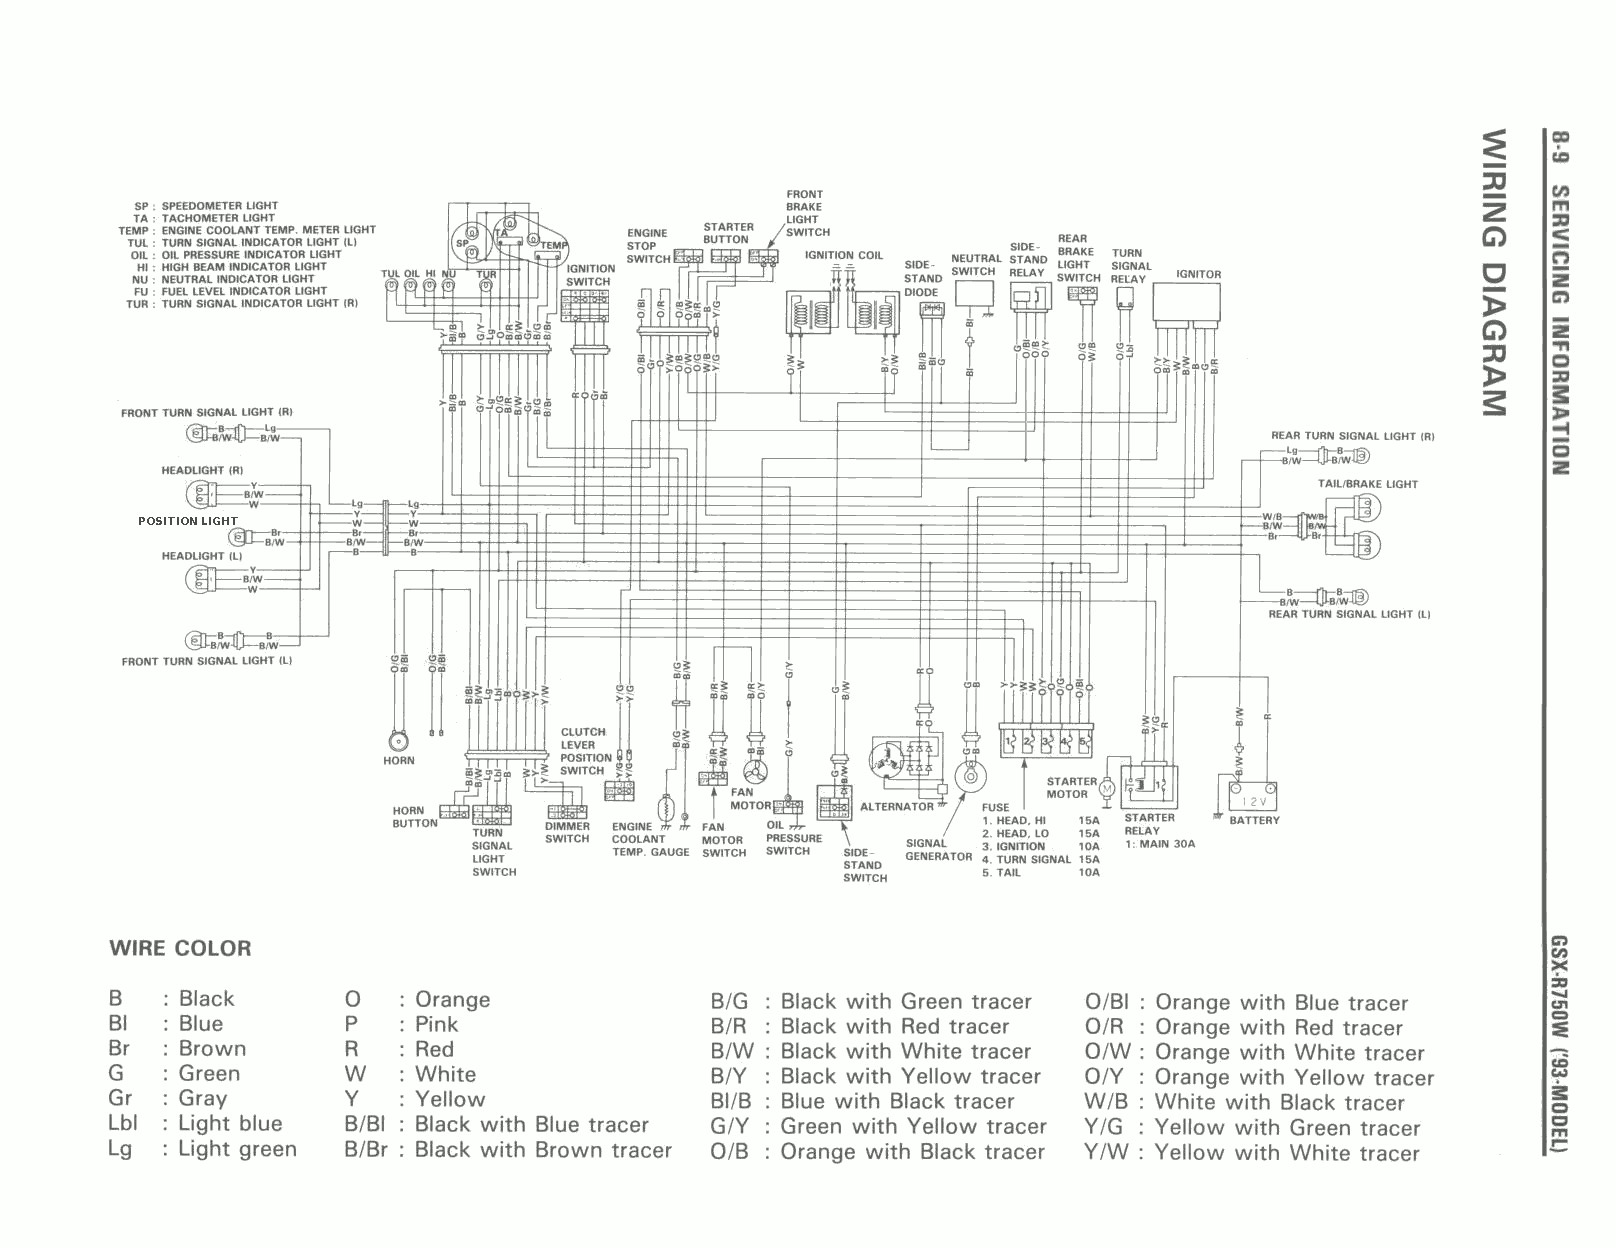 GSXR750 1993 wiring diagram?resize\\\\\\\\\\\\\\\\\\\=665%2C514 wiring gsx diagram suzuki 1997 r600v wiring diagrams 2000 Gsxr 600 Wiring Diagram at webbmarketing.co